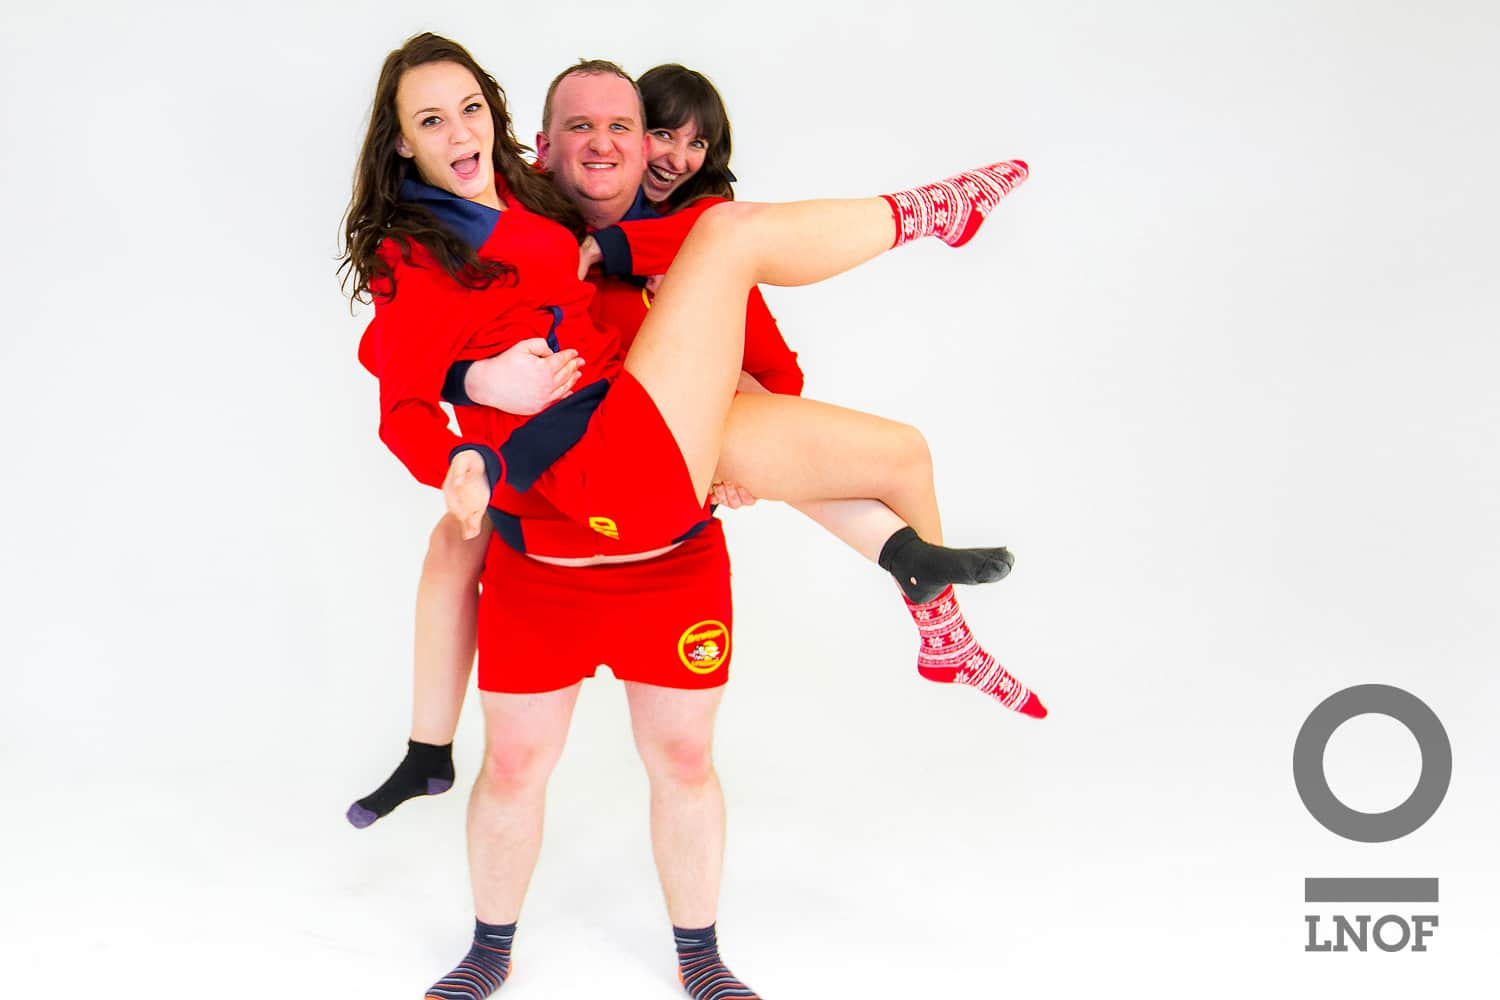 Lifeguard carrying two other colleagues in his Baywatch outfit